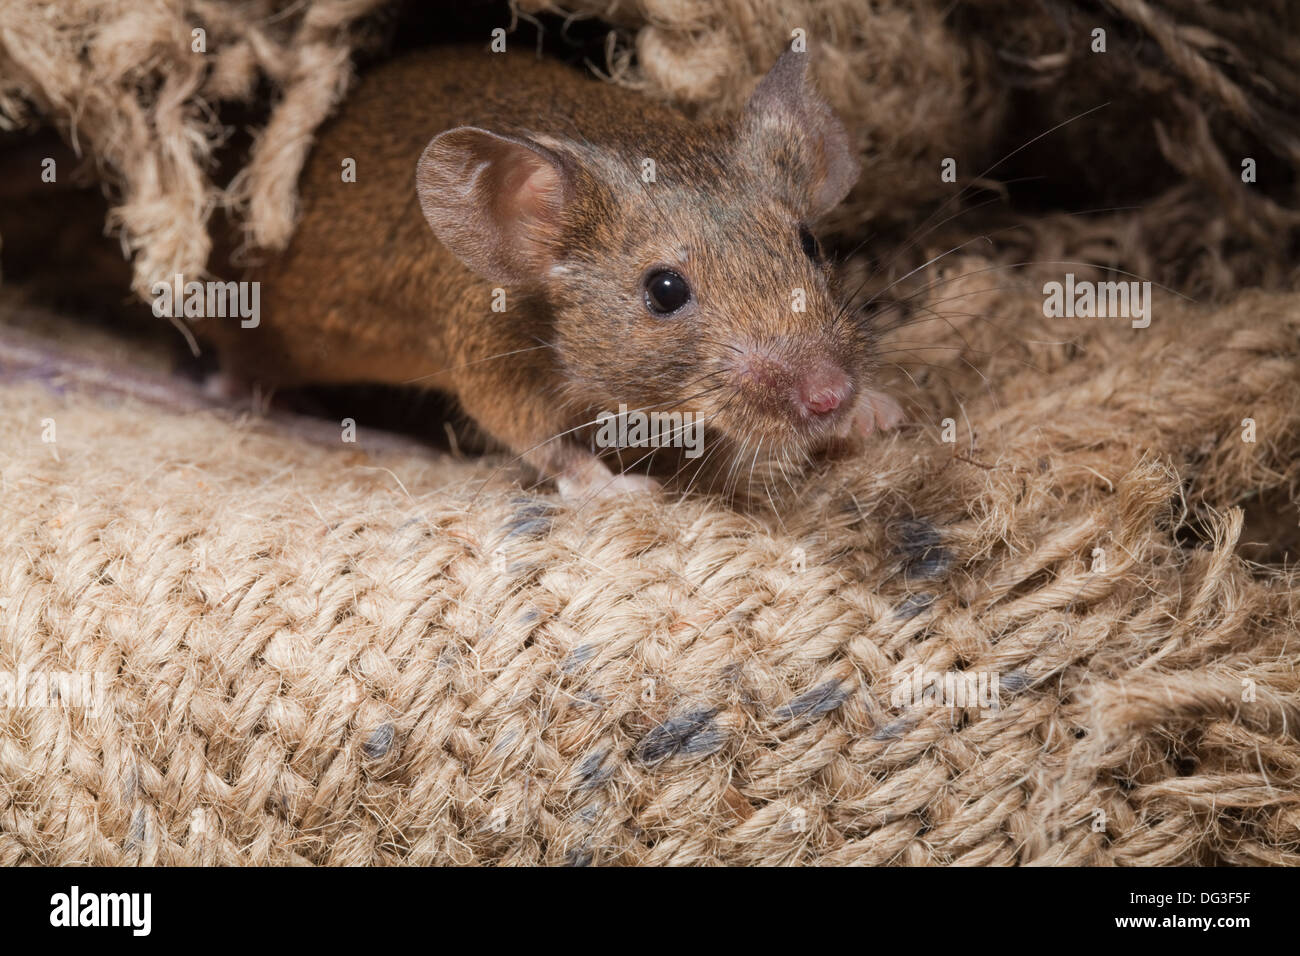 House Mouse (Mus musculus). Emerging from amongst hessian sacs. - Stock Image